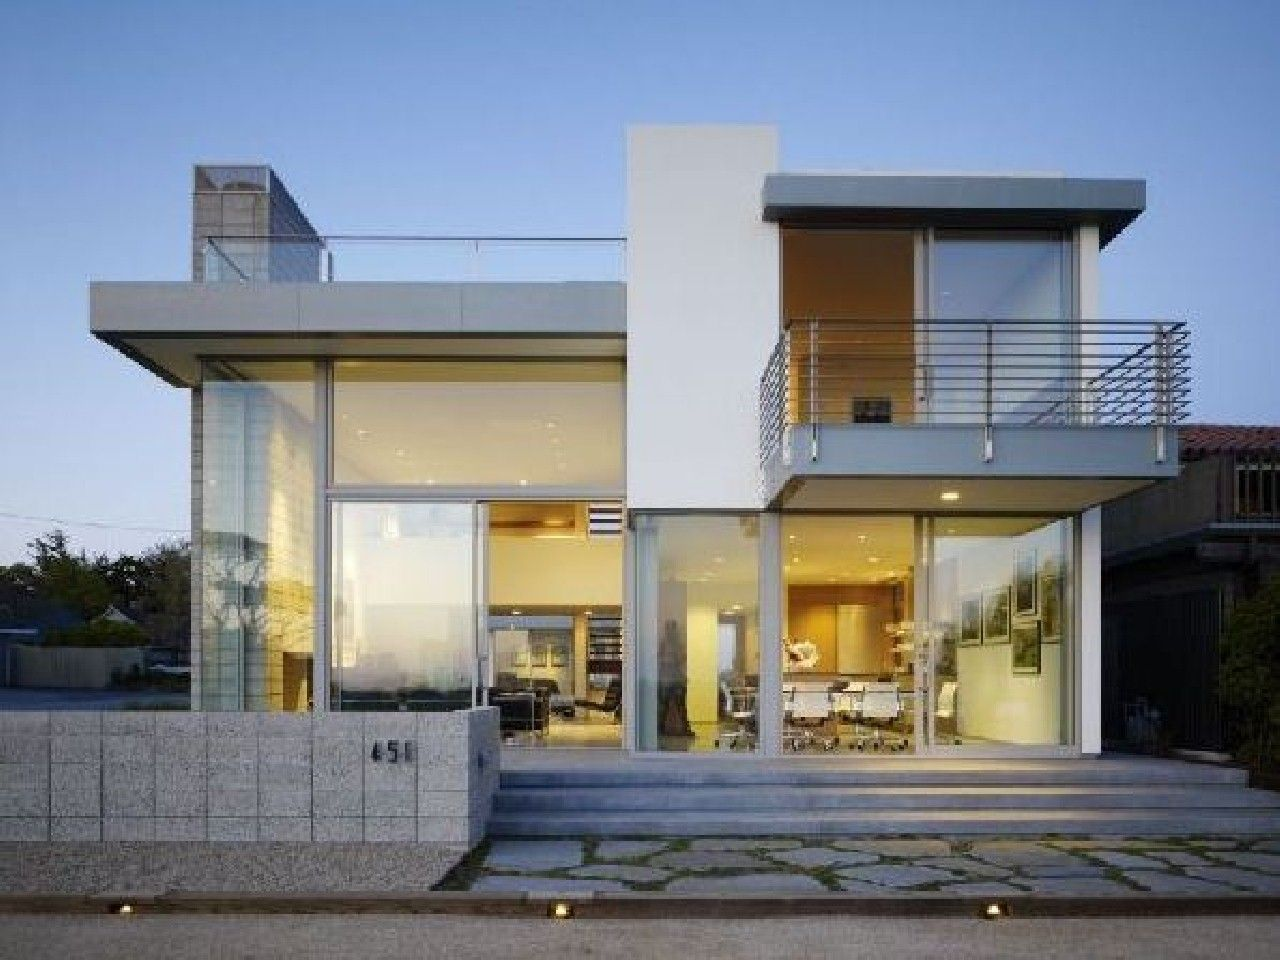 Home Design Minimalist minimalist design house - home design